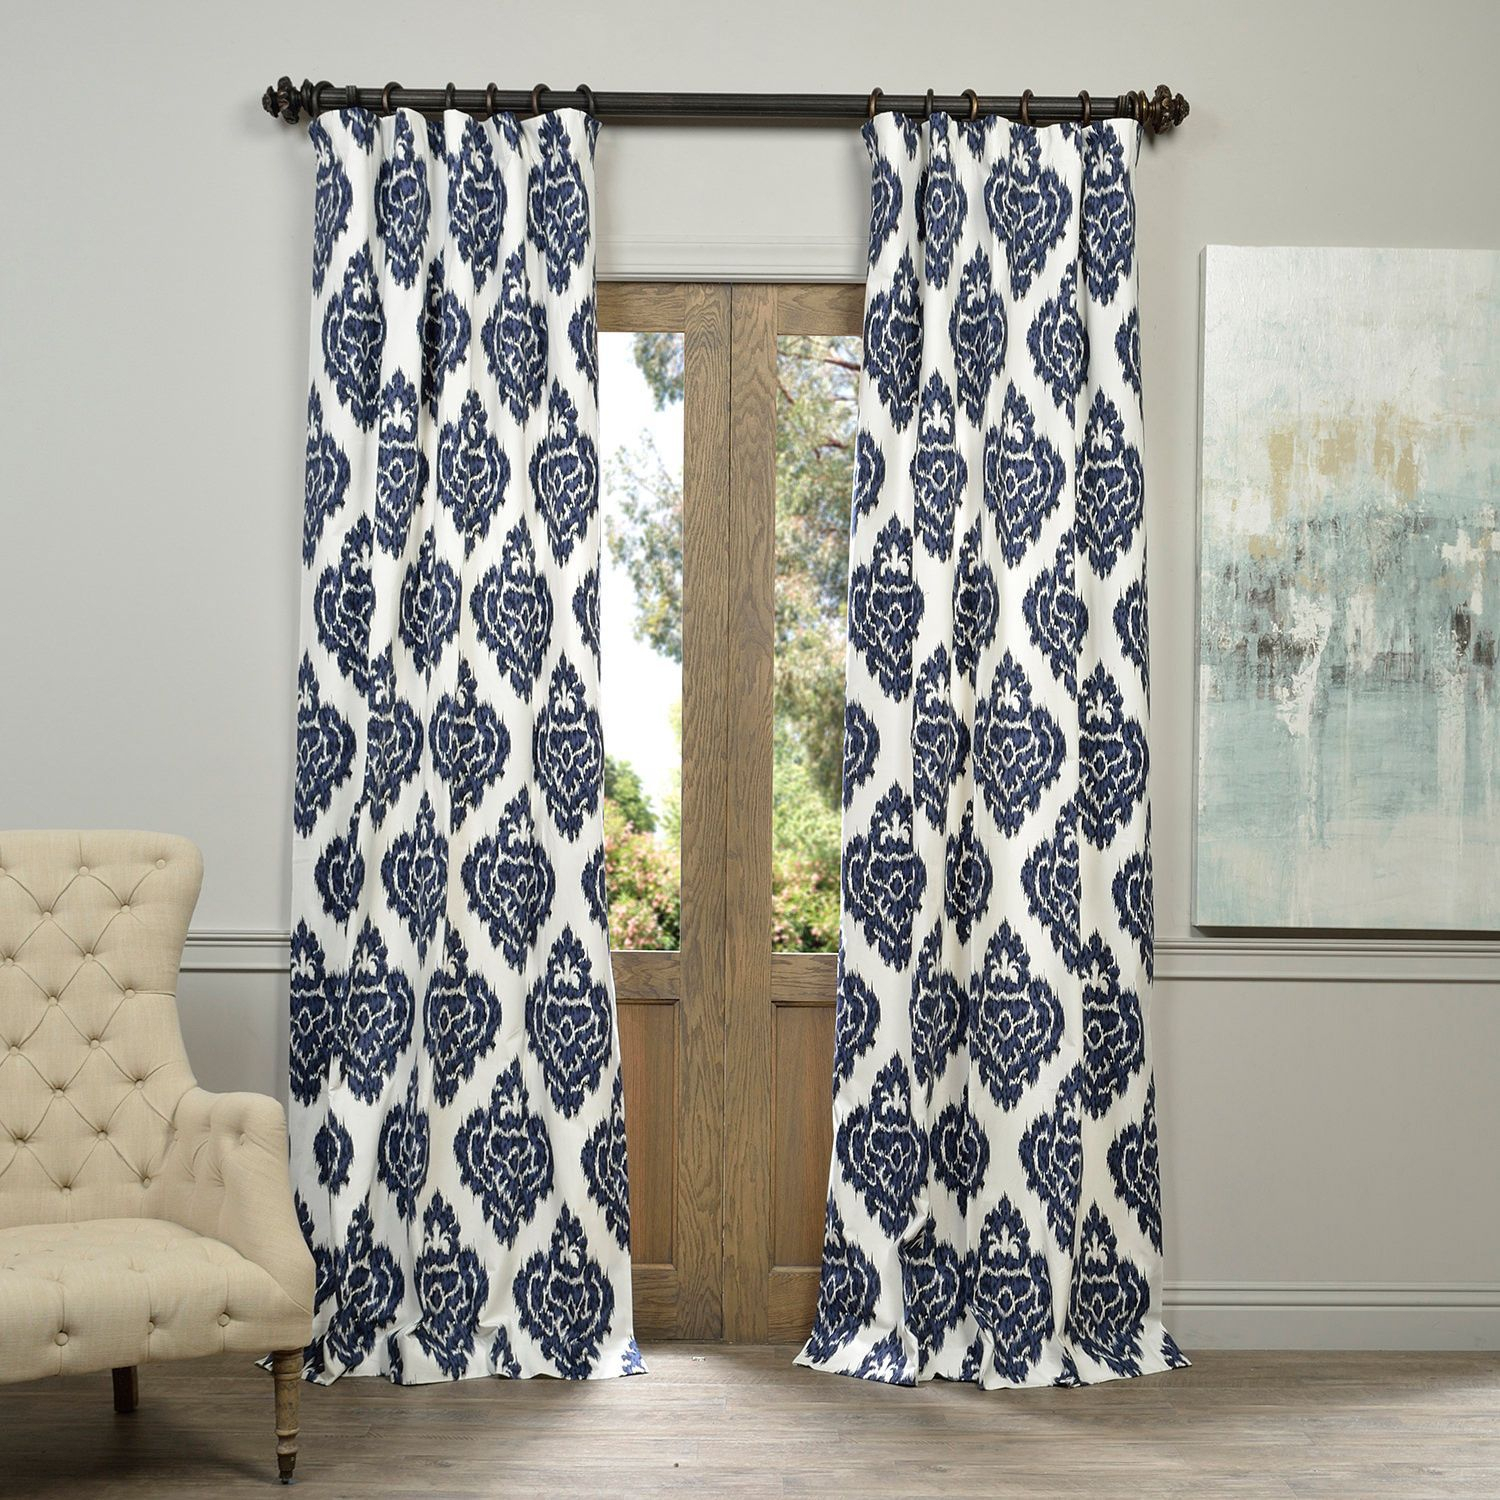 Popular Photo of Ikat Blue Printed Cotton Curtain Panels